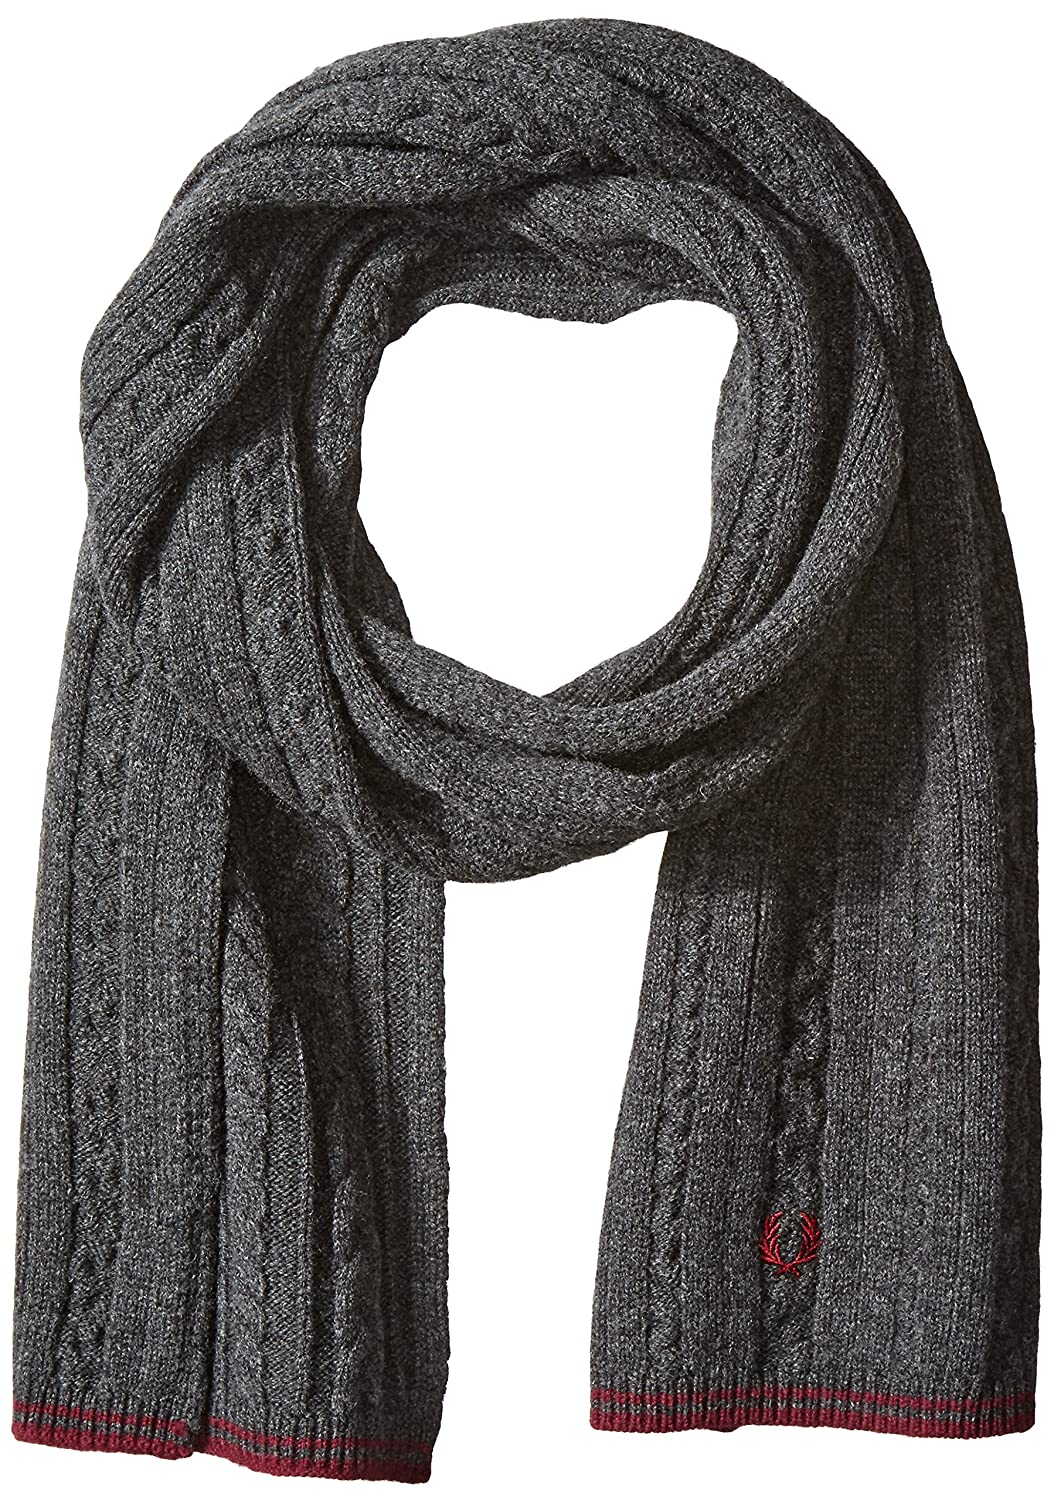 Fred Perry Men's Tipped Cable Scarf Charcoal/Maroon One Size C9109